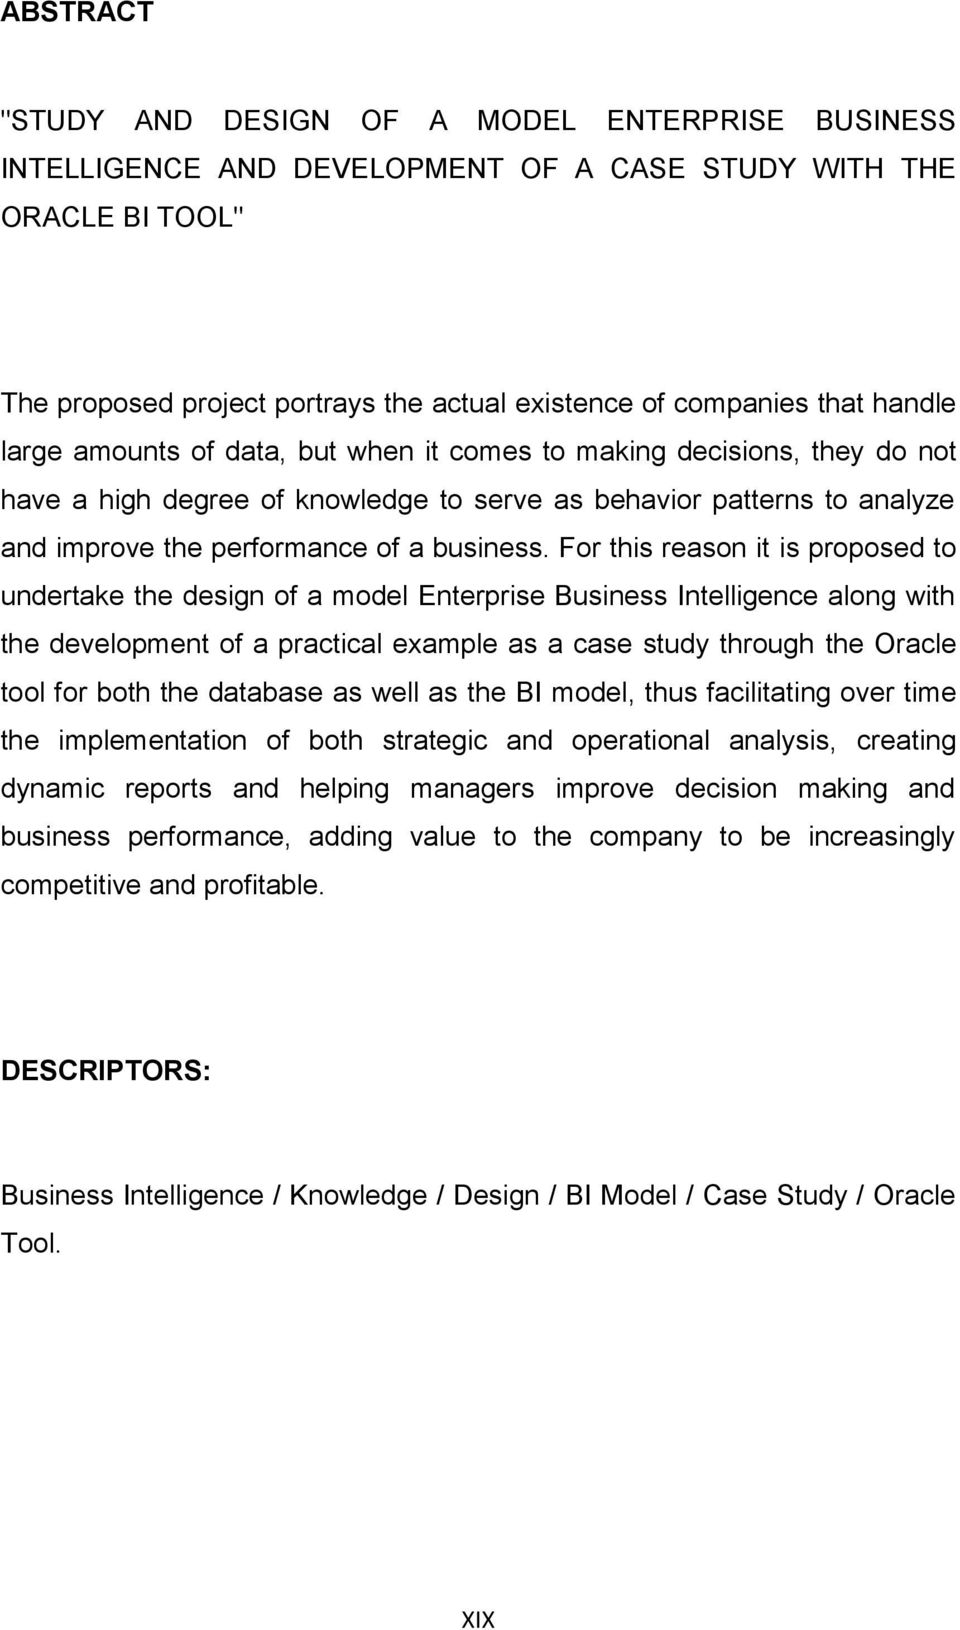 For this reason it is proposed to undertake the design of a model Enterprise Business Intelligence along with the development of a practical example as a case study through the Oracle tool for both